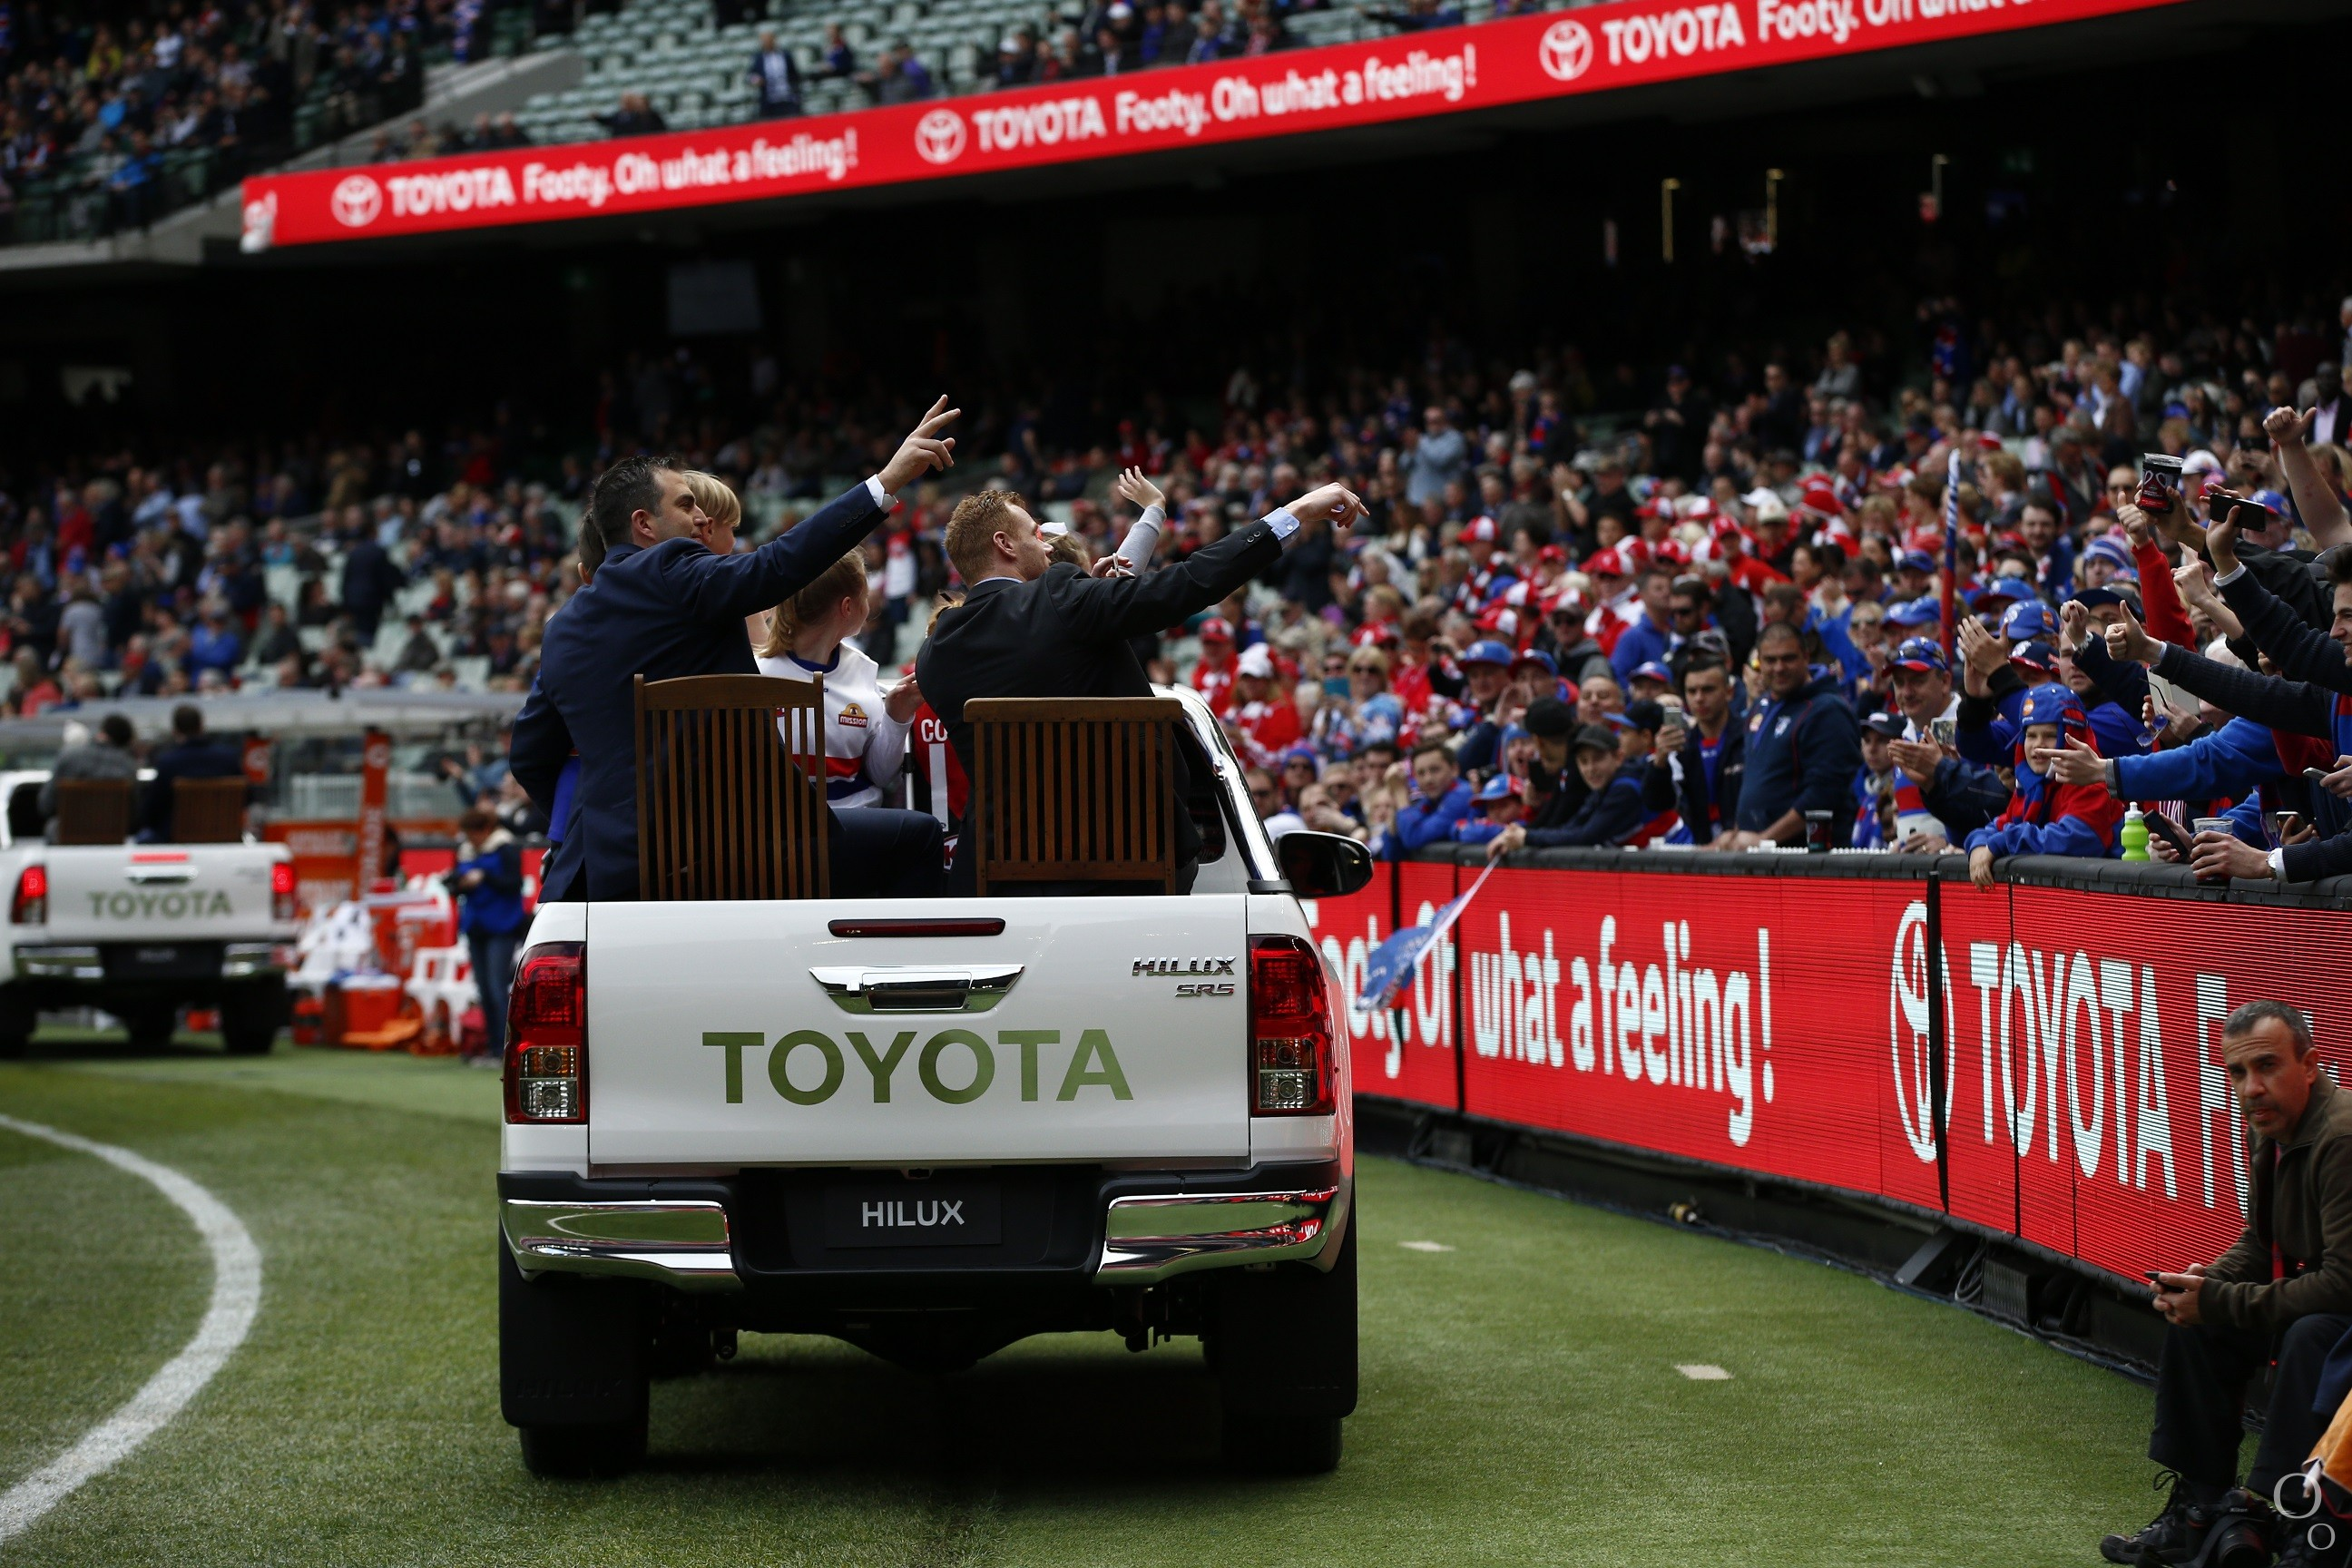 2016 Toyota Afl Grand Final Day Peter Jones Special Events